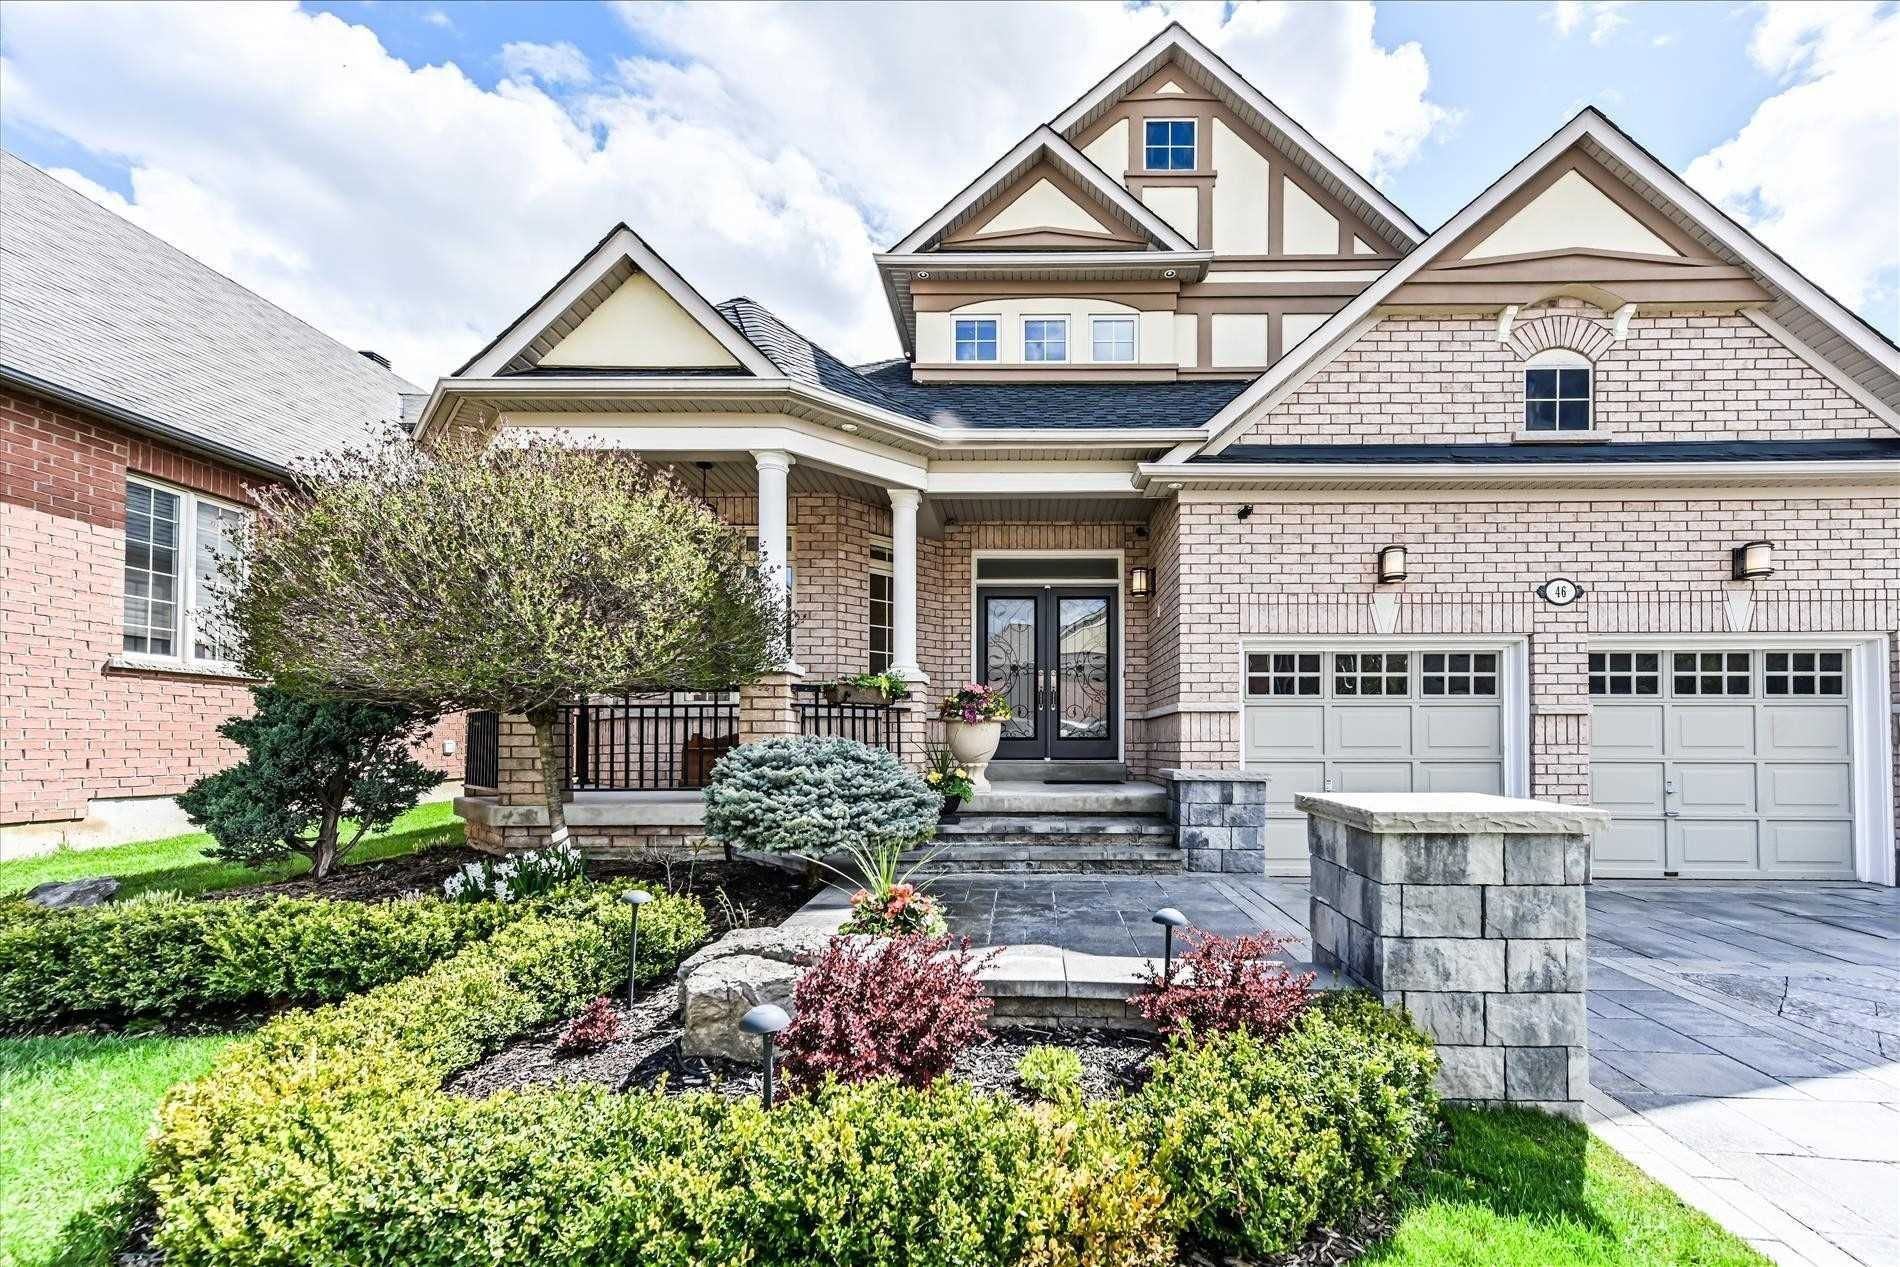 Main Photo: 46 Emerald Heights Dr in Whitchurch-Stouffville: Rural Whitchurch-Stouffville Freehold for sale : MLS®# N5325968